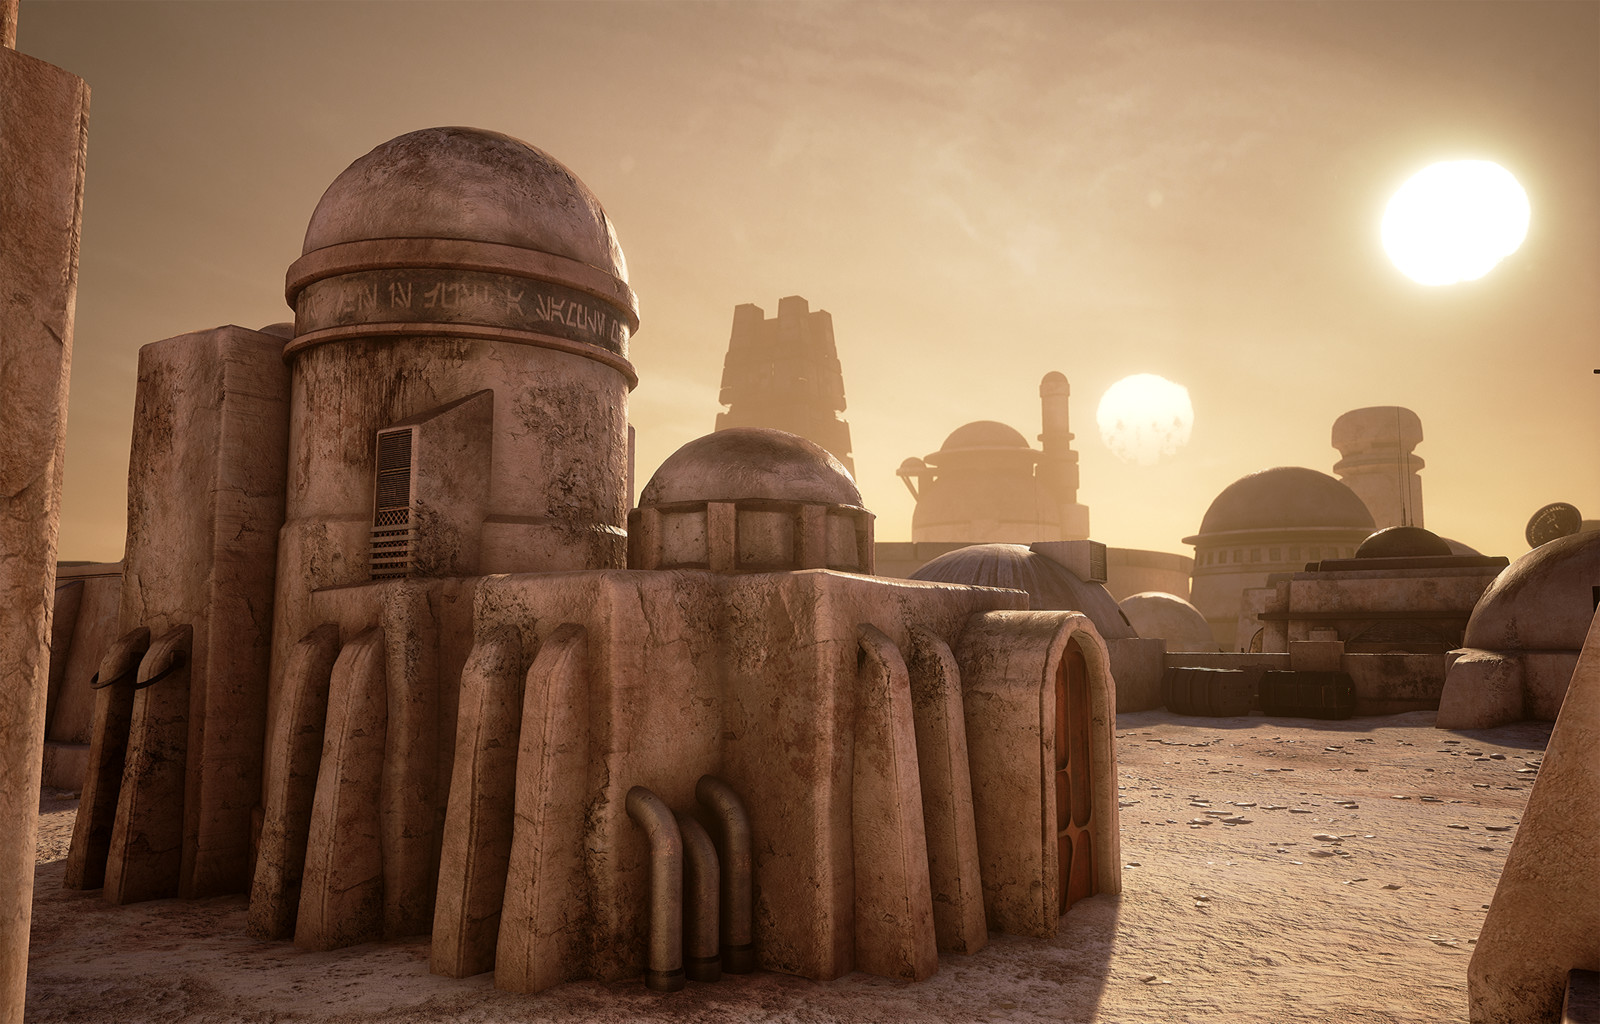 Star Wars Tatooine Mos Eisley